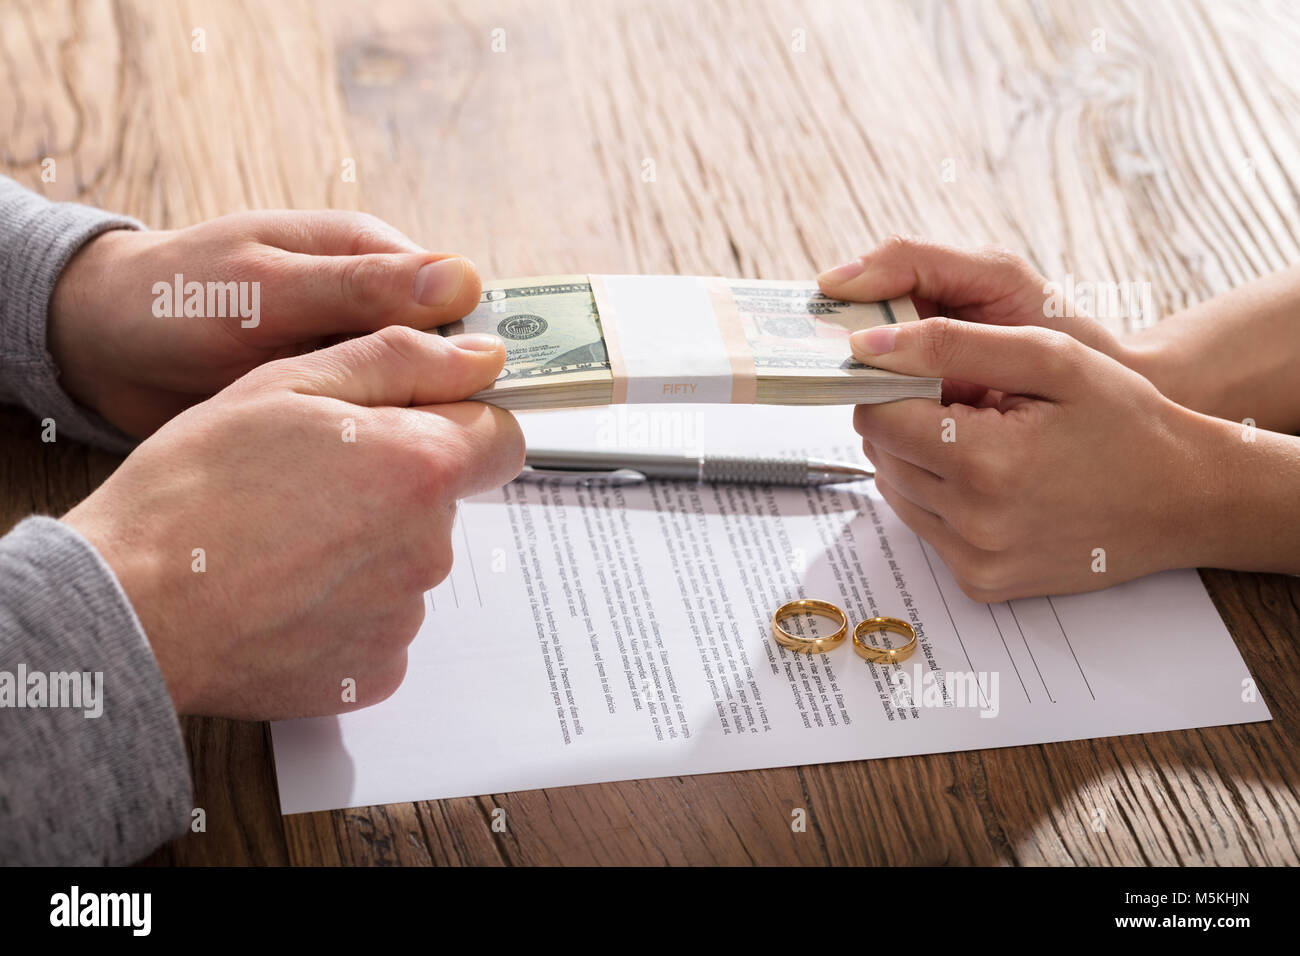 Couple's Fighting For Money Over The Divorce Agreement With Gold Wedding Rings - Stock Image